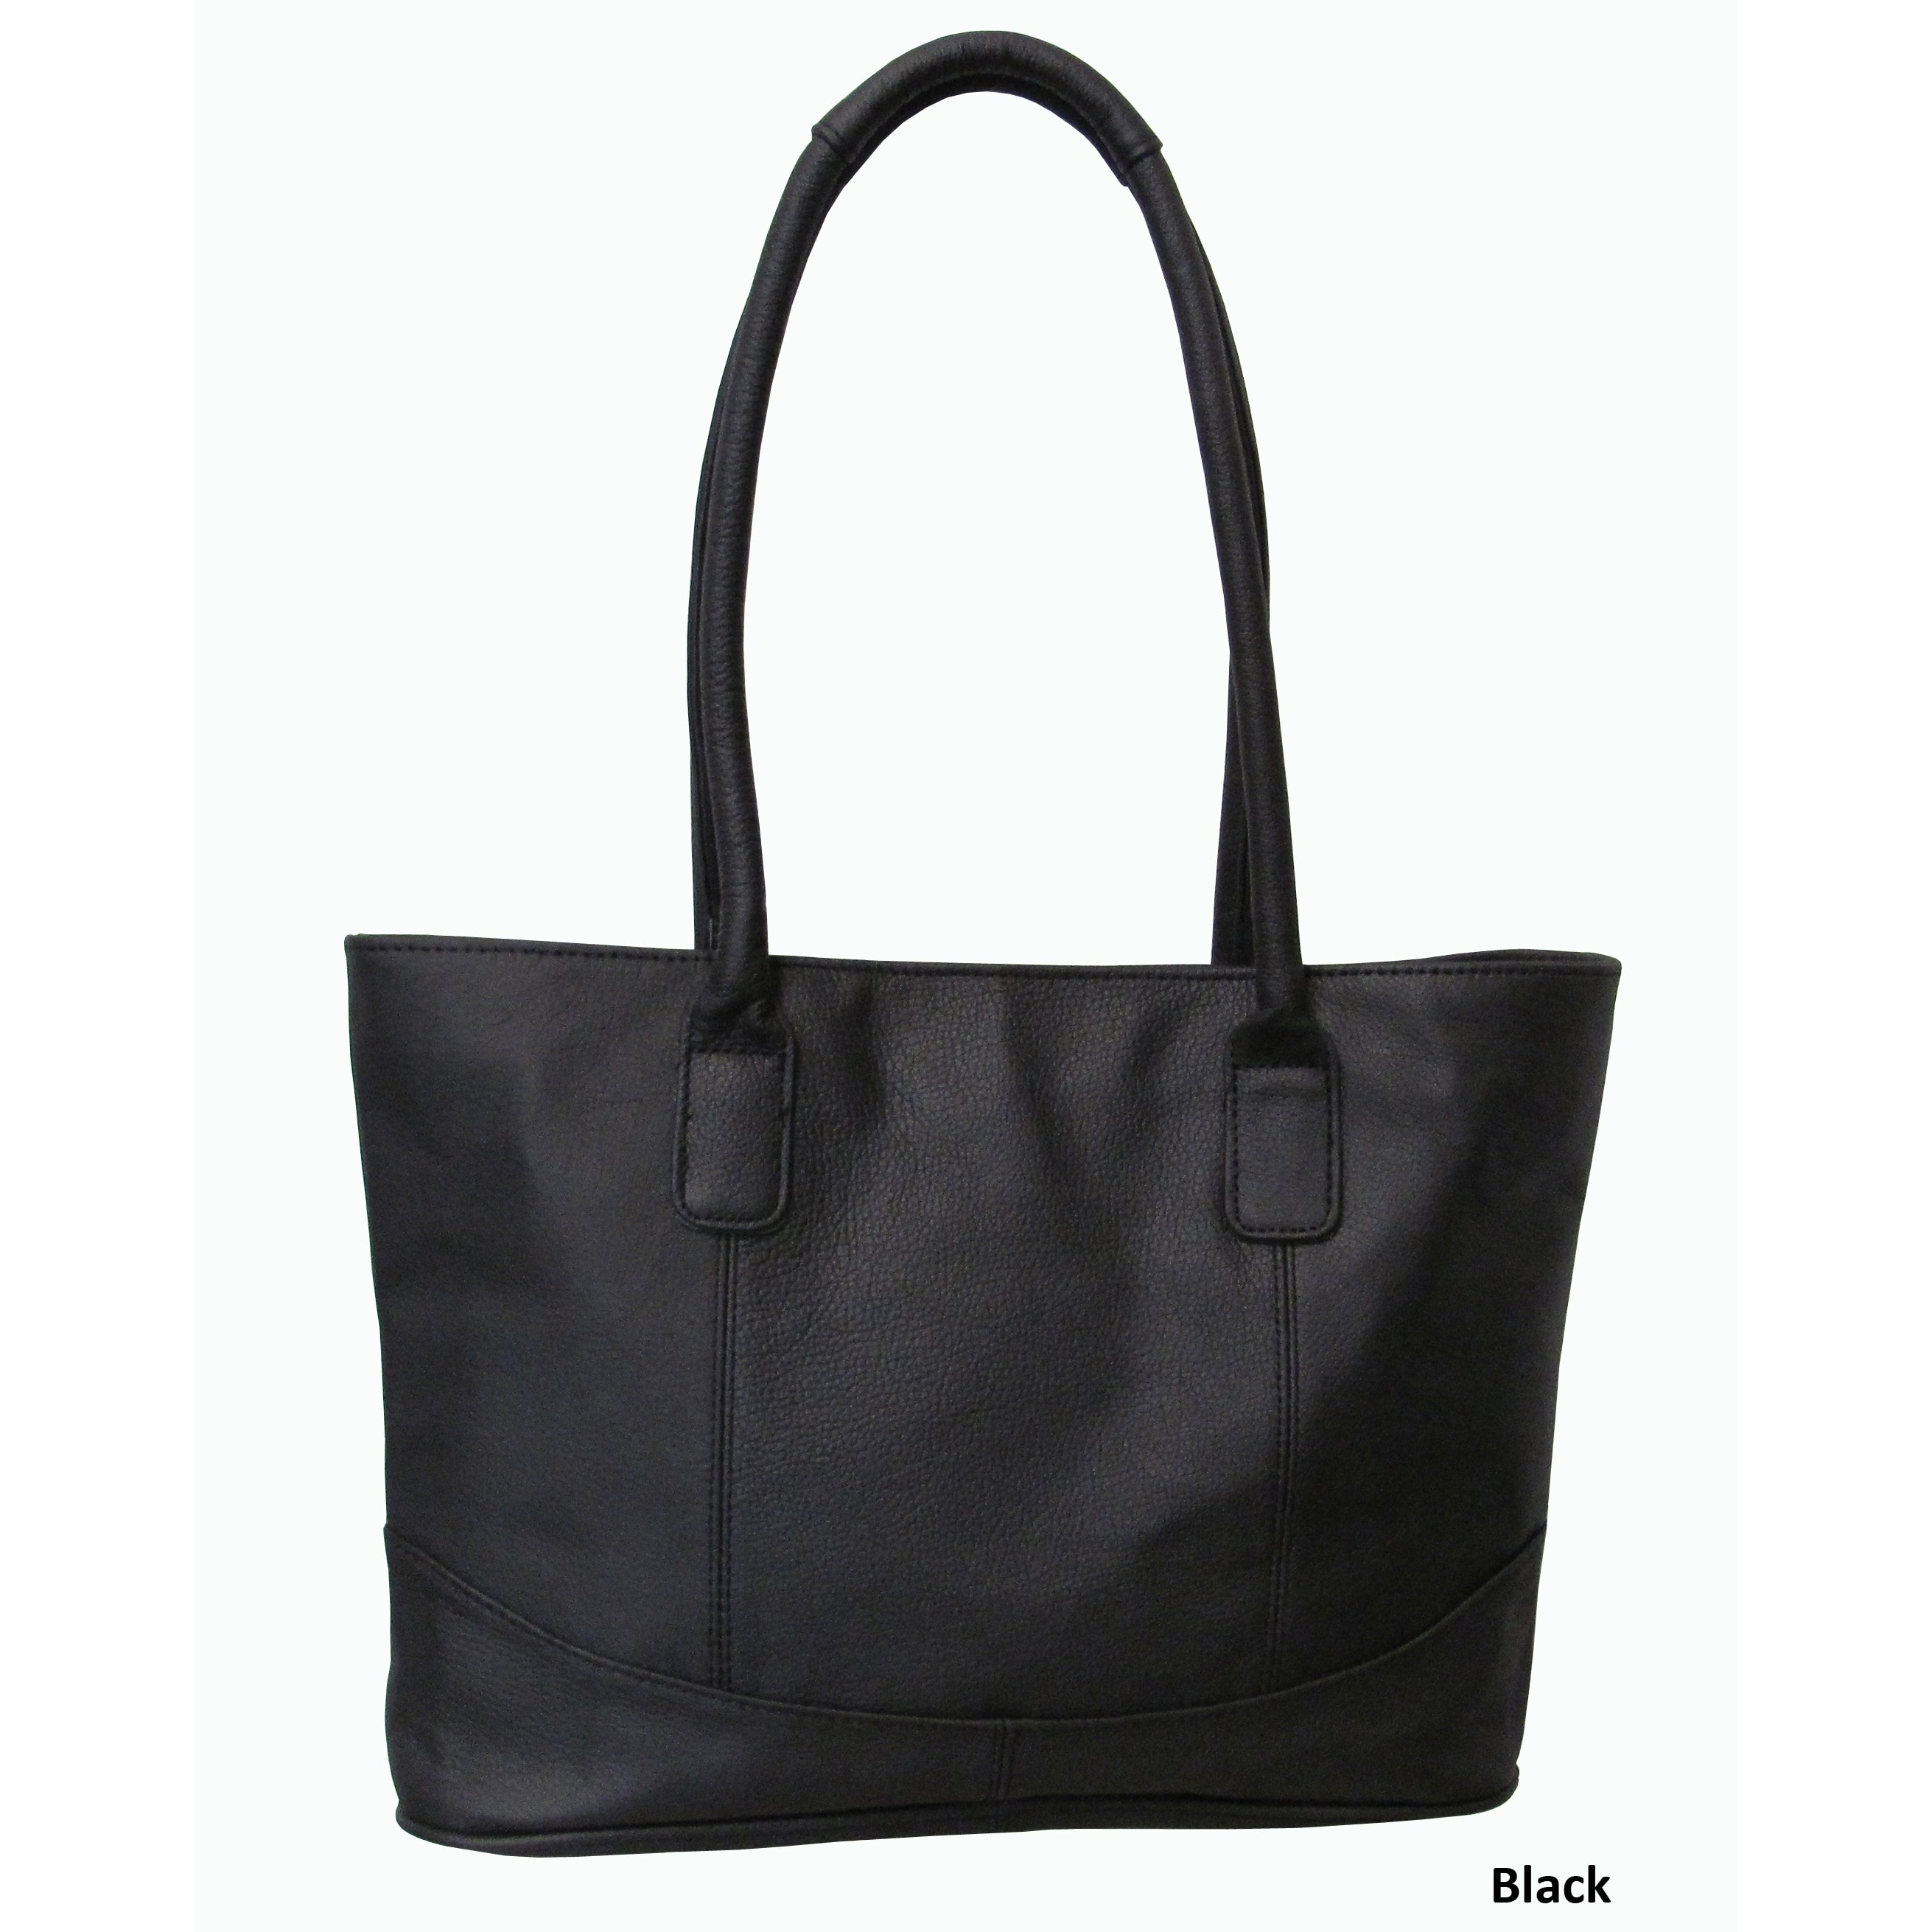 6a009e9a505c Shop Amerileather Casual Leather Handbag - On Sale - Free Shipping On  Orders Over  45 - Overstock - 29943